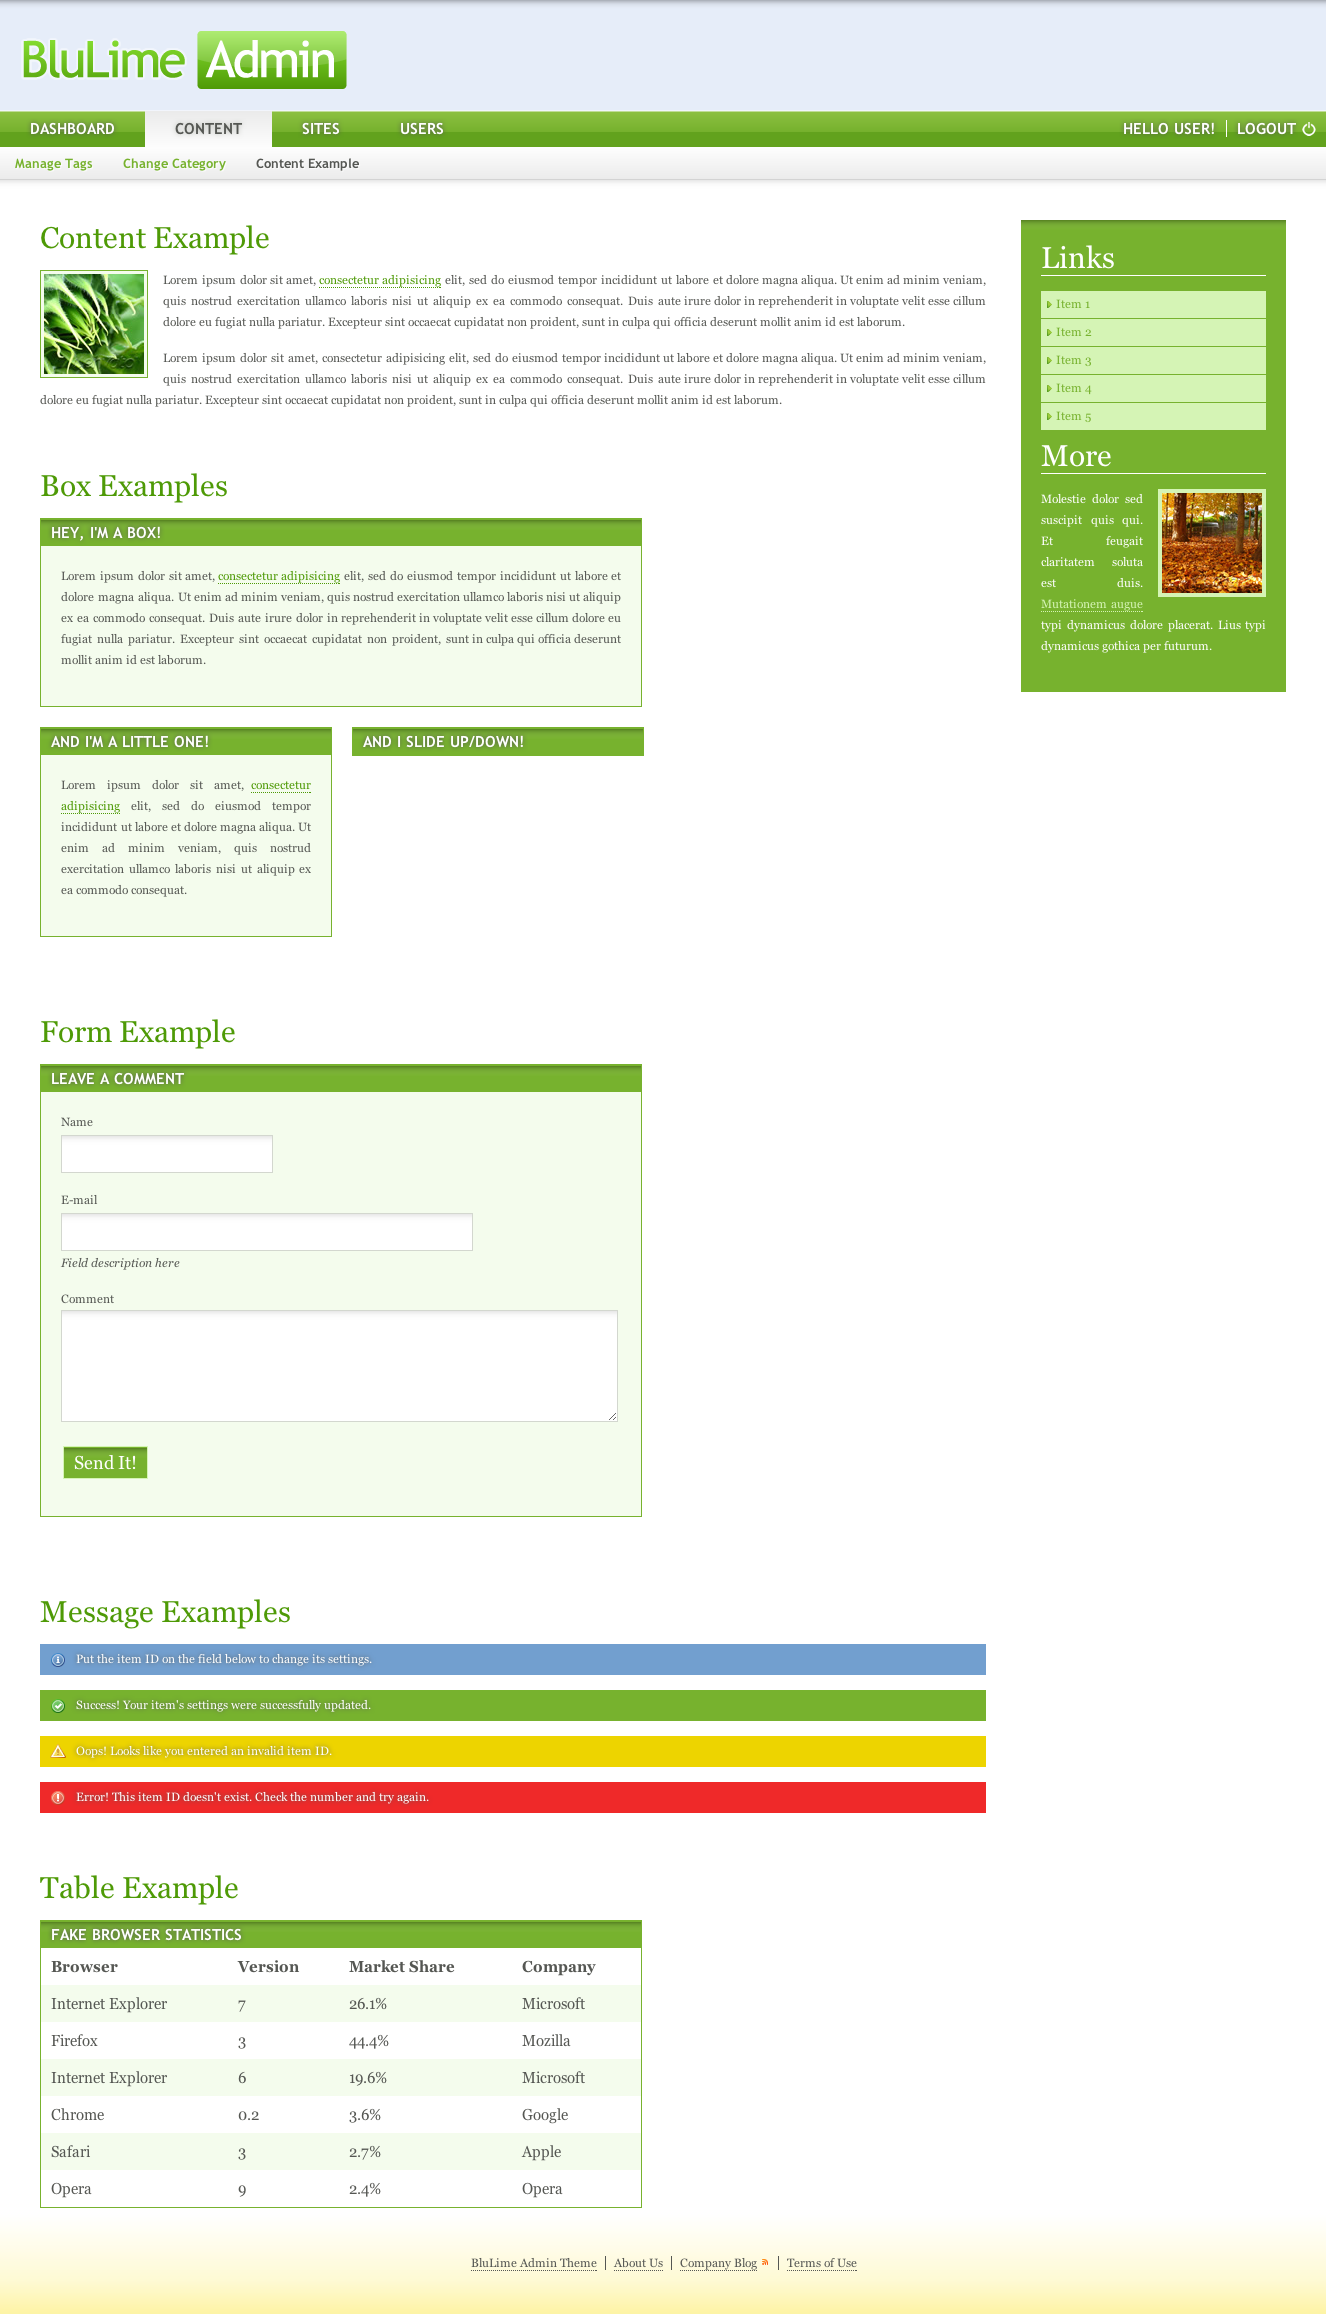 BluLime Admin - BluLime Admin default page displaying content, box, form, message and table elements. Sidebar also supports any type of content like text, inline and block links, images and videos.